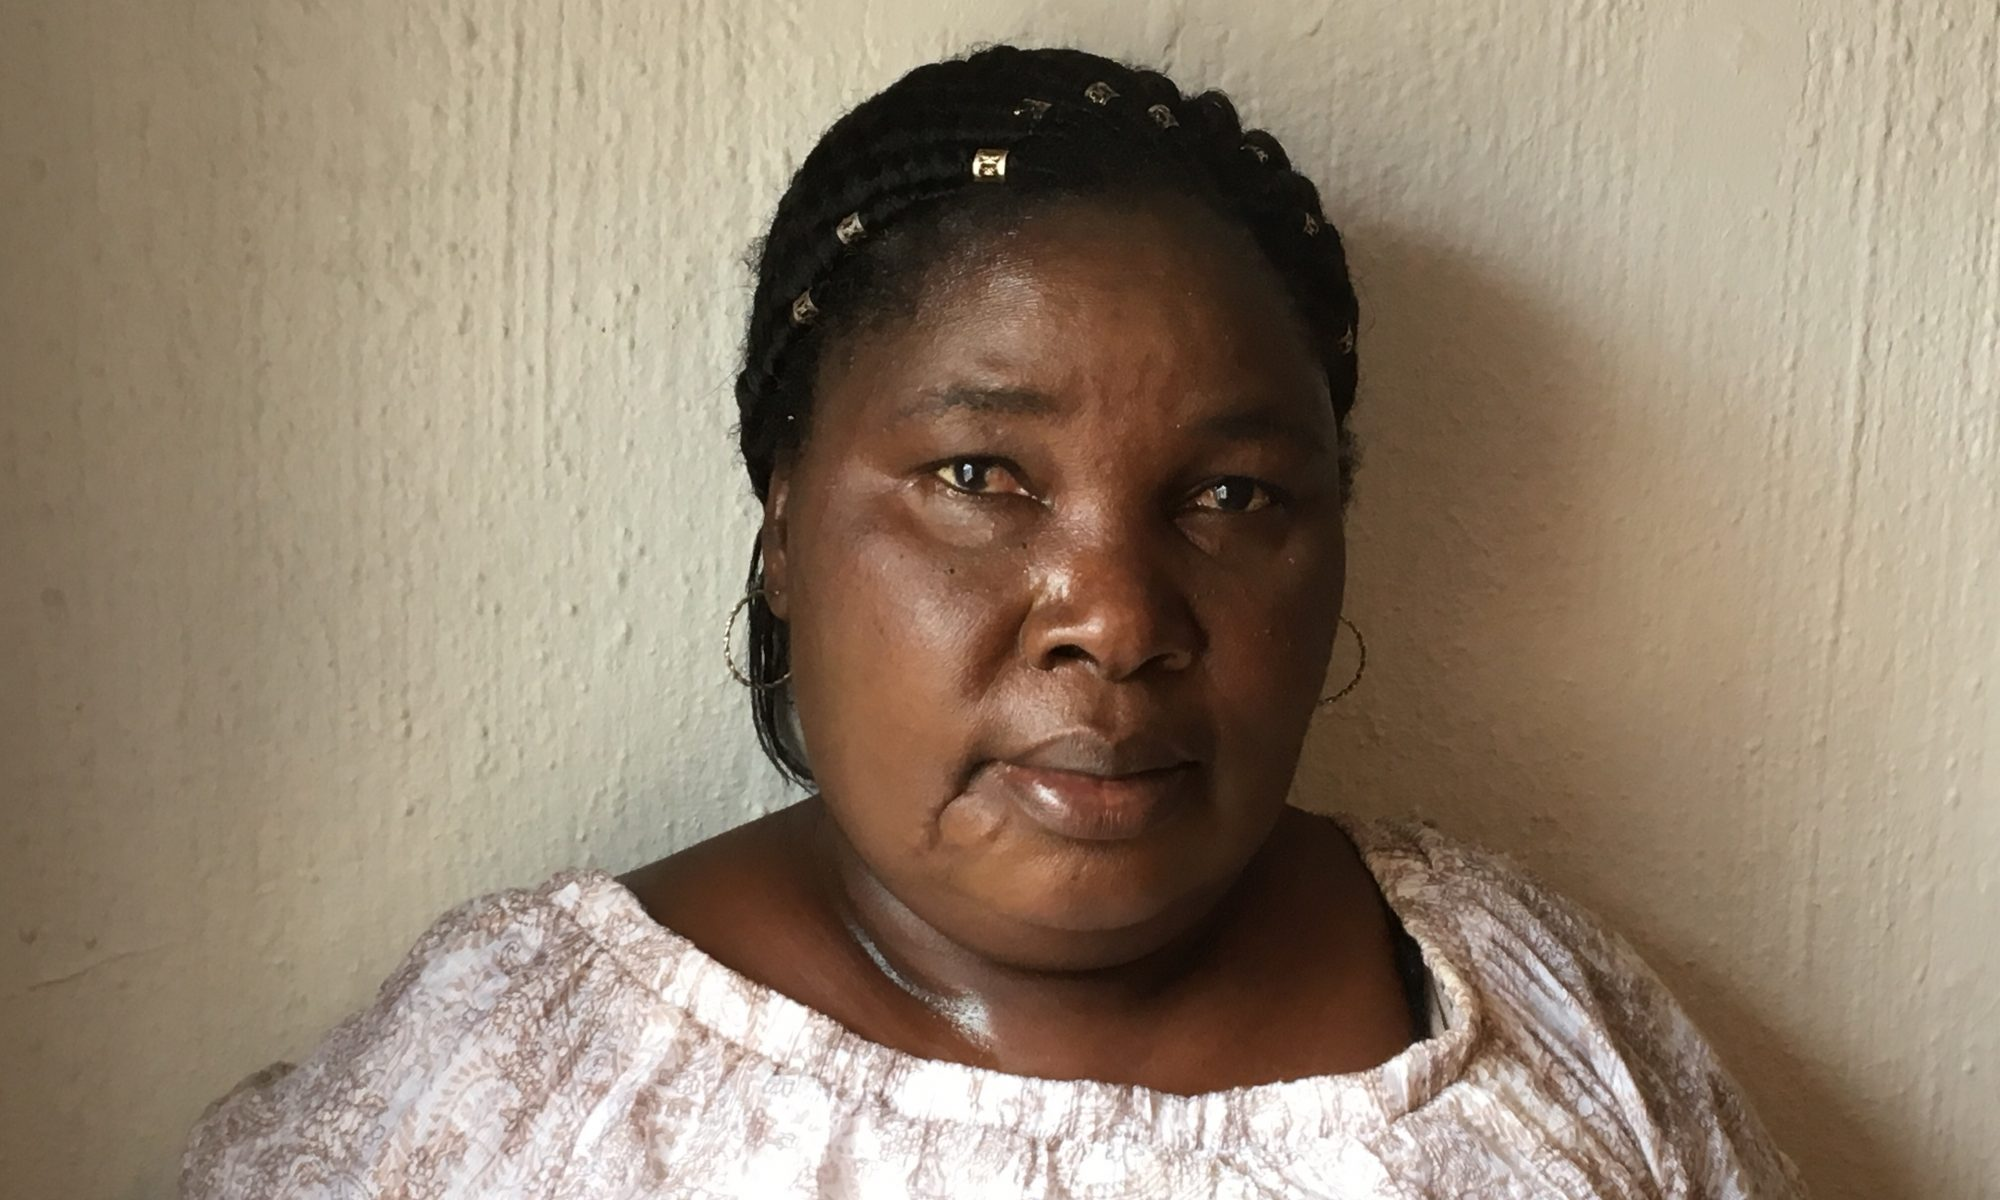 Delisile Buthelezi domestic worker and care giver